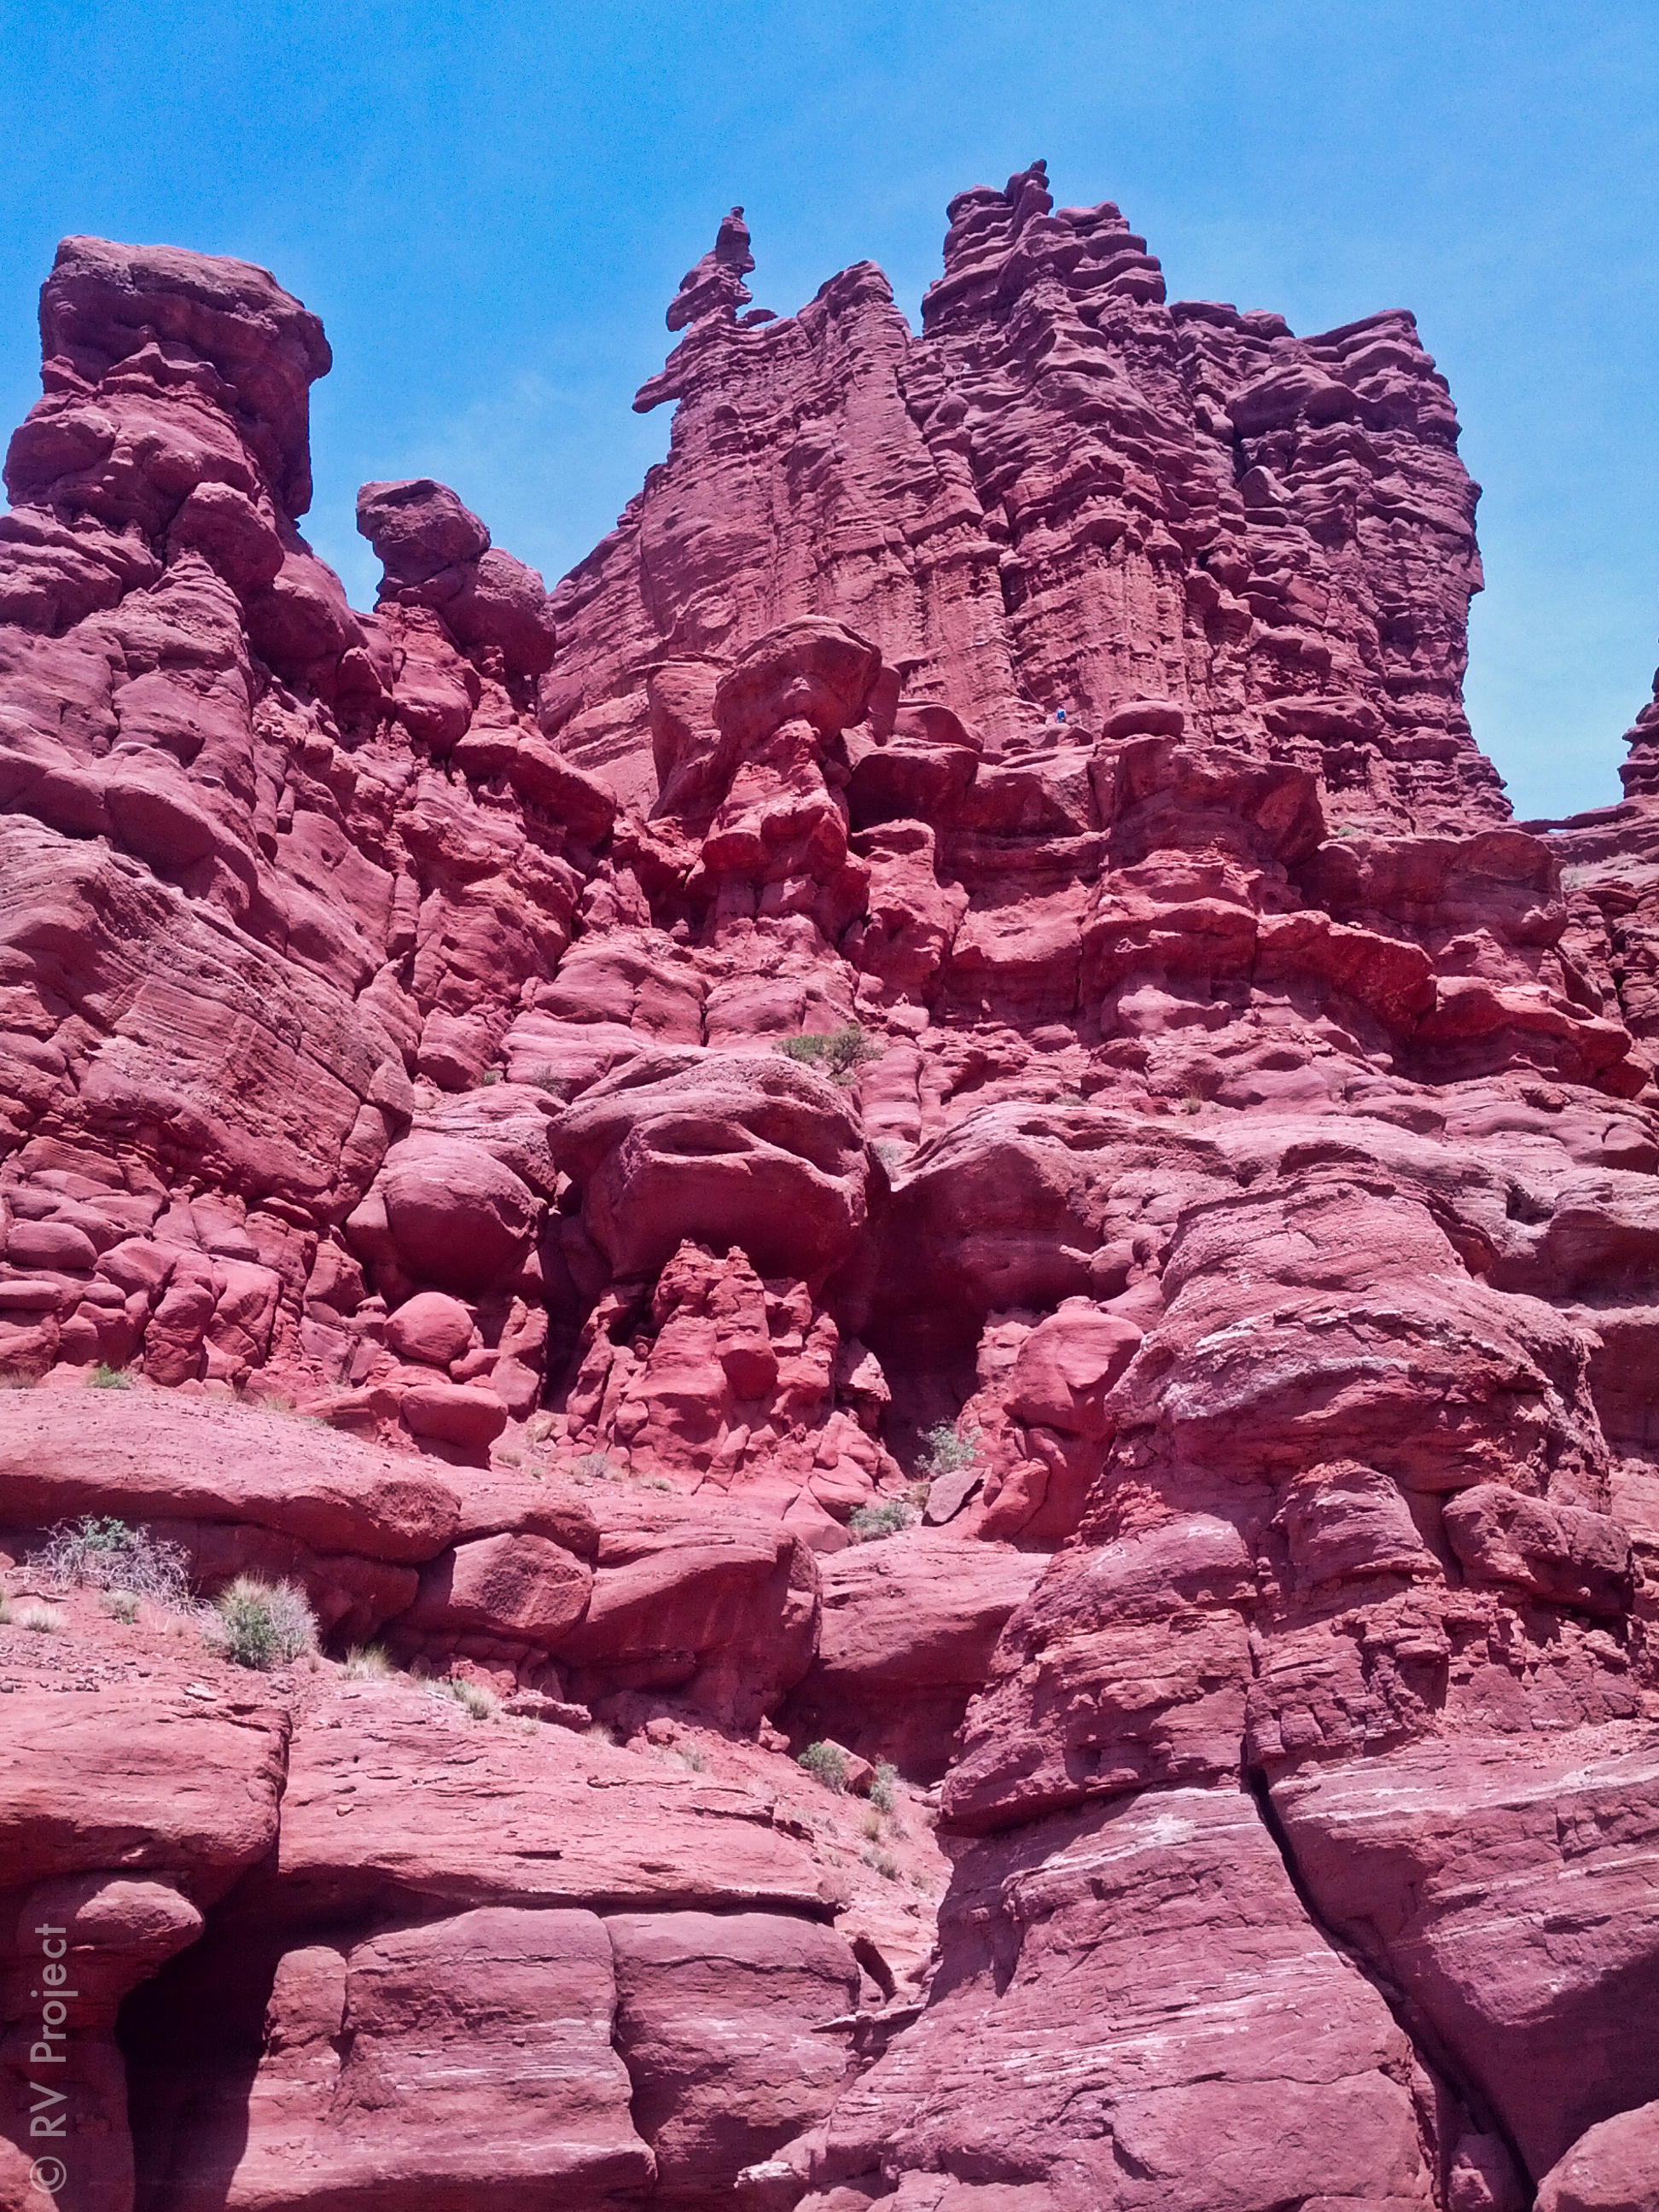 If you look really close, you can see a couple climbing (belayer is in a blue shirt). Fisher Towers were huge!!